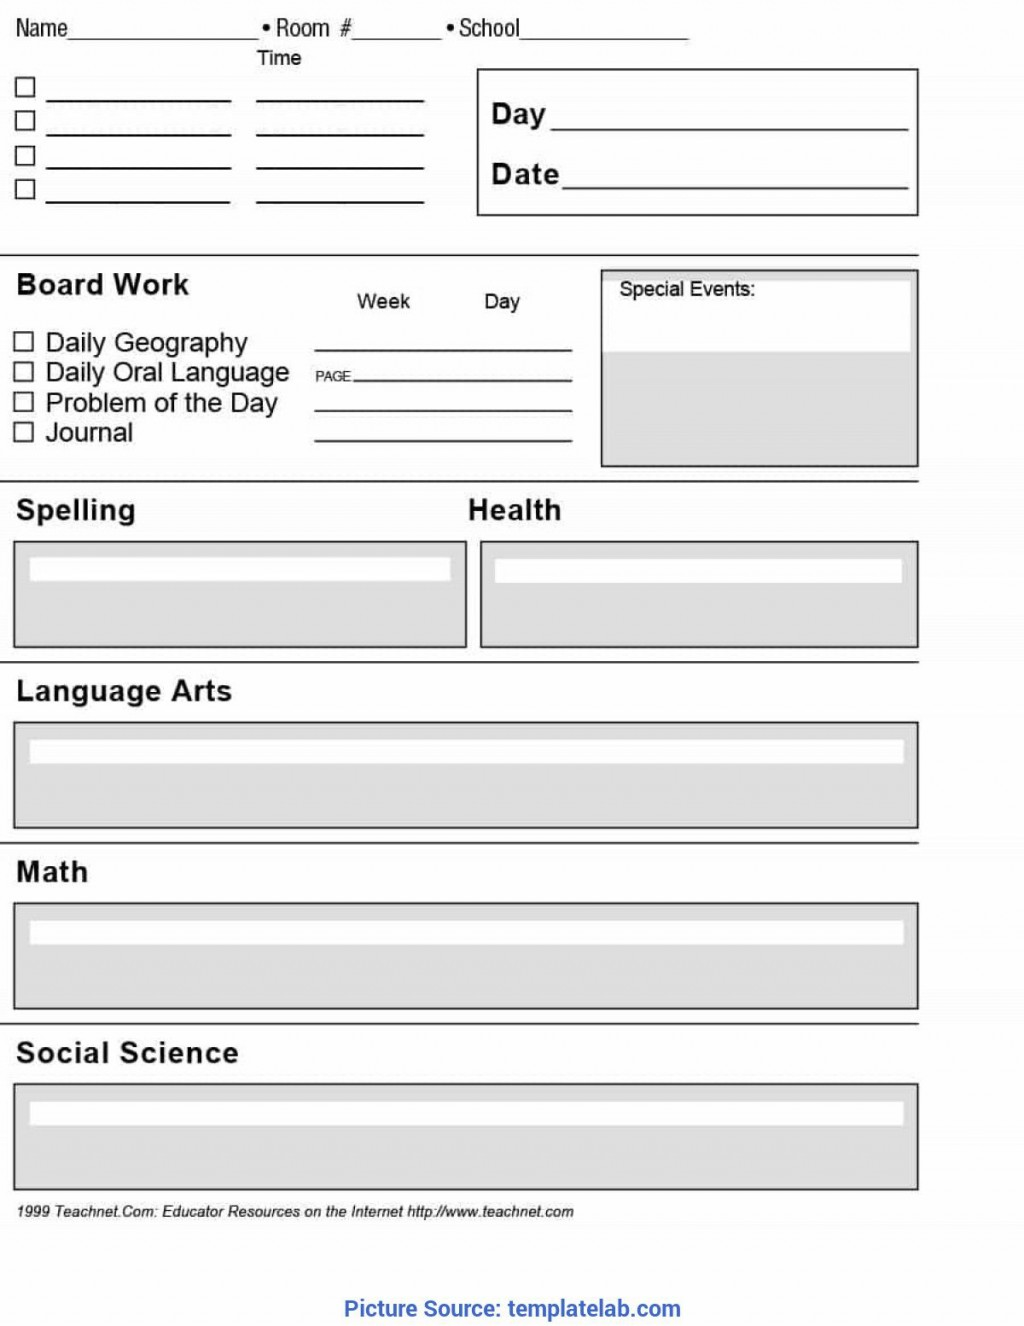 002 Archaicawful Free Unit Lesson Plan Template Idea Large